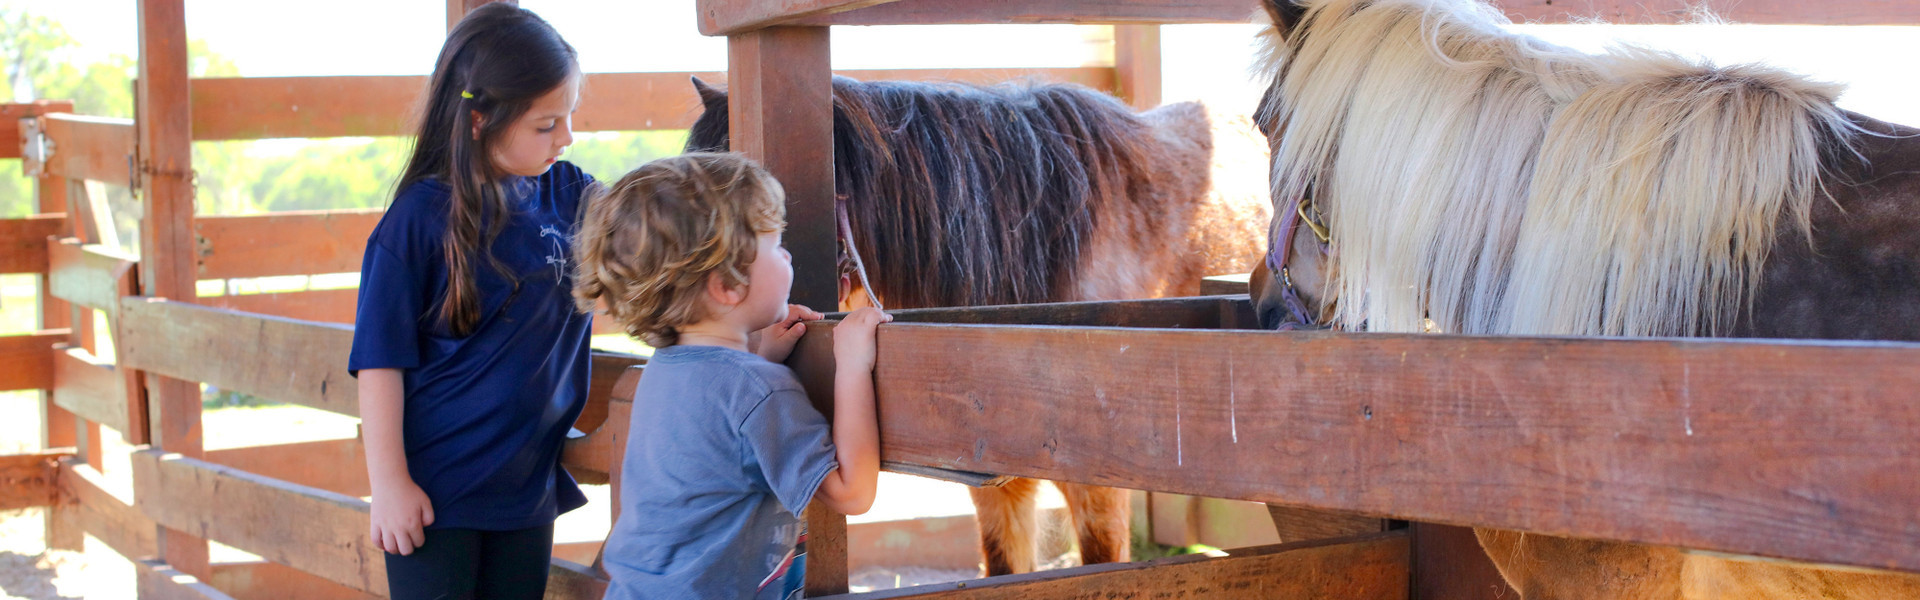 Florida Petting Zoo near Orlando | Kids at Petting Farm